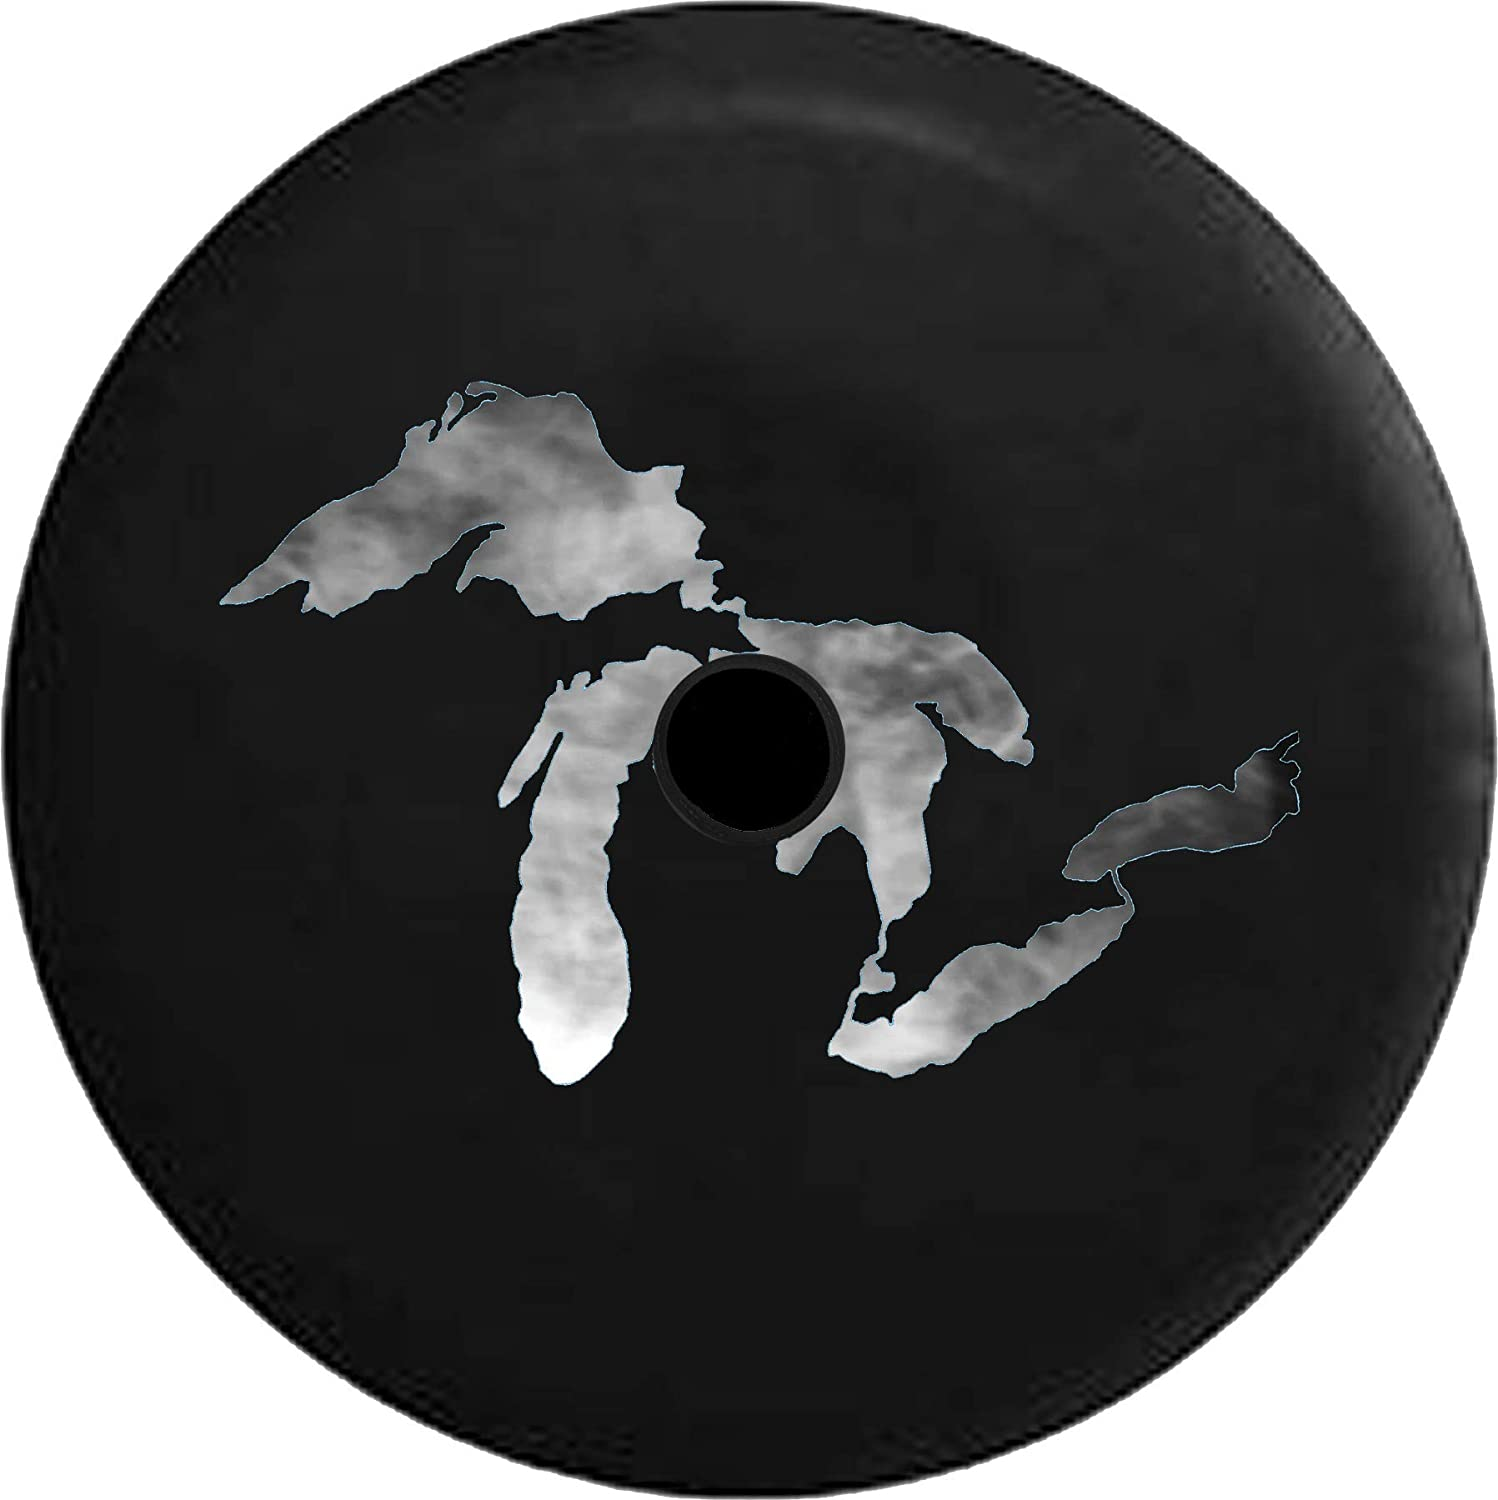 JL Spare Tire Cover Smoke on The Water Michigan Great Lakes Spare Tire Cover with Backup Camera Hole BUC Size 32 Inch Fits: Jeep JL Accessories 2018+